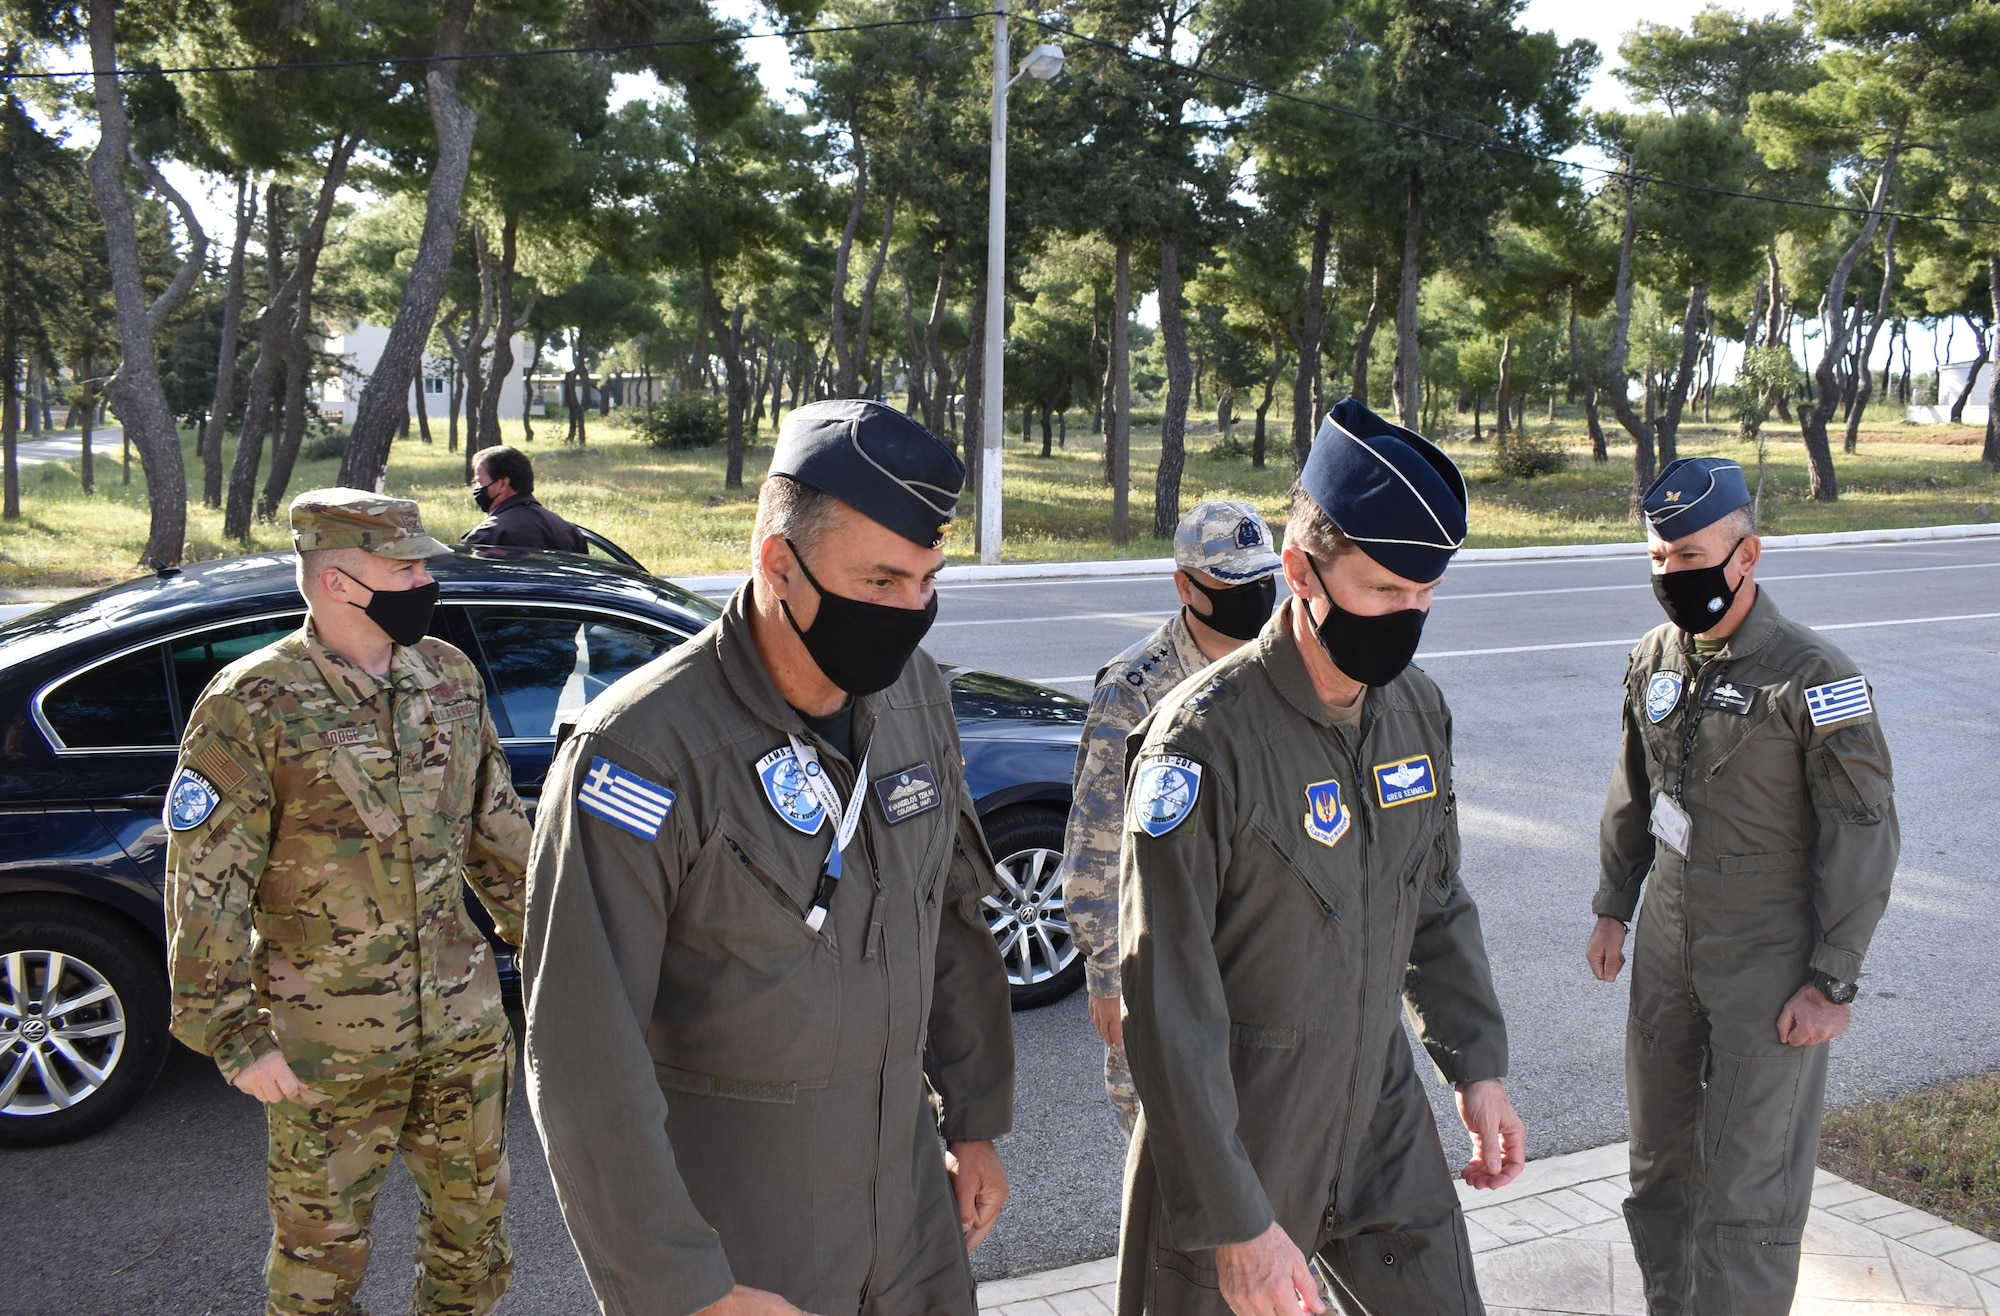 Hellenic Air Force Col. Evangelos Tzikas (left) walks U.S. Air Force Maj. Gen. Greg Semmel (right) into the newly formed Integrated Air and Missile Defense Center of Excellence for a facility tour in Chania, Crete on April 21, 2021. The IAMD COE was recently approved as a multinational COE where subject matter experts from five nations collaborate thoughts and inputs for the IAMD domain.